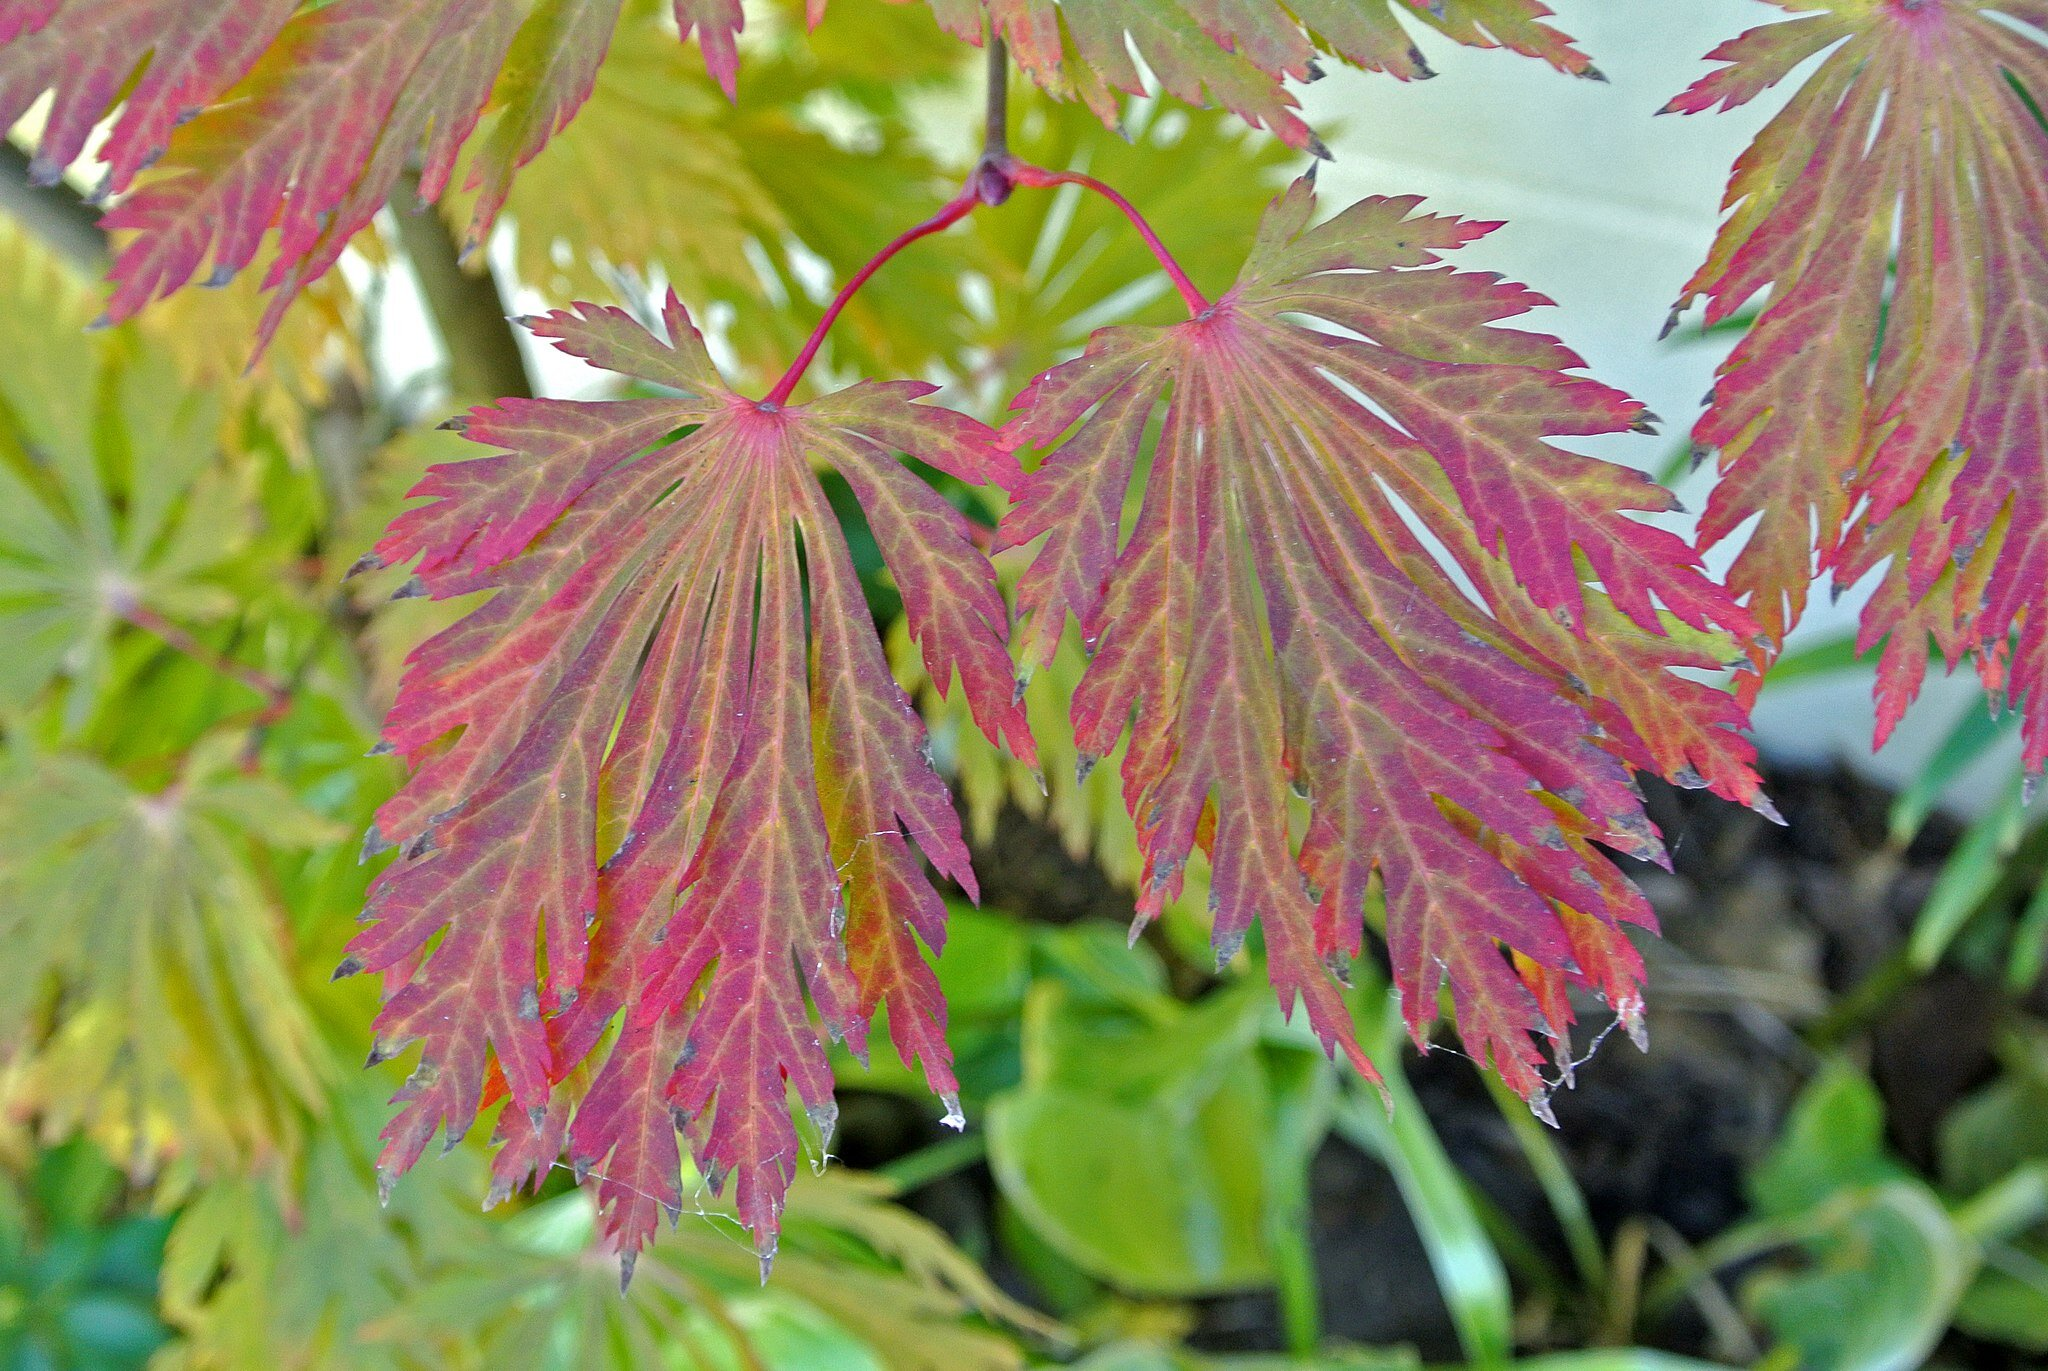 """The showy fall colors of fern-leaf full moon maple – """"dancing peacock maple"""" in Japanese. (photo: James Steakley, Creative Commons Attribution-Share Alike 3.0 Unported license)"""